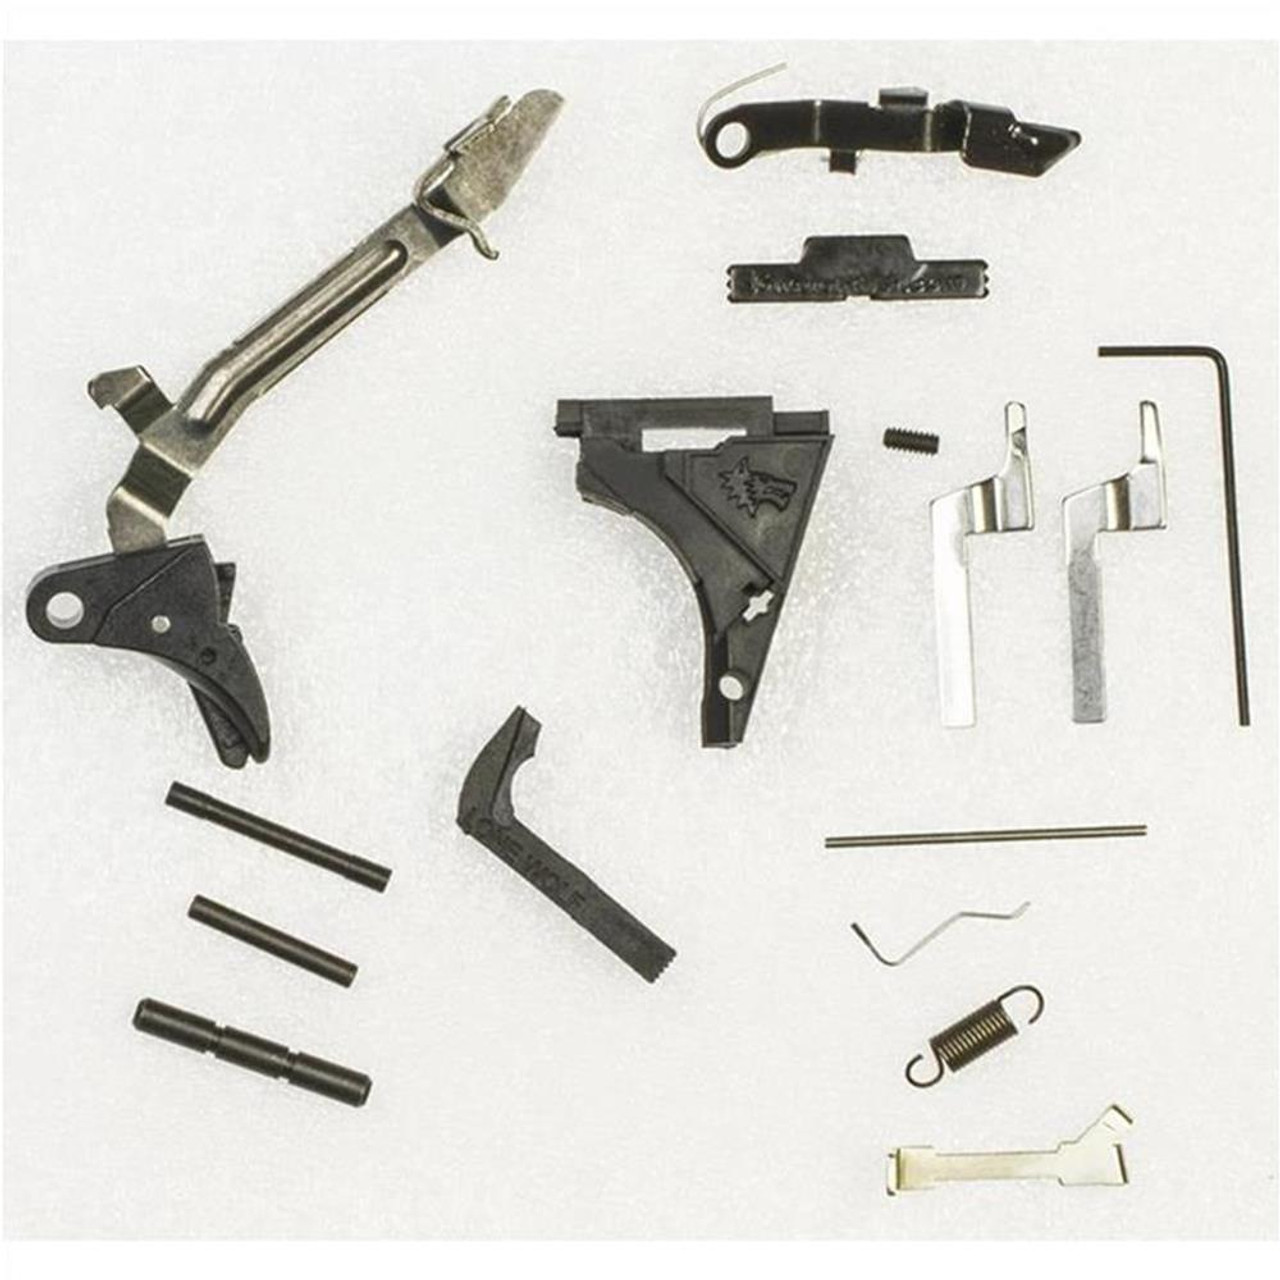 Lone Wolf Polymer80 PF940 Fullsize Lower Completion Kit 9mm,  40, and  357